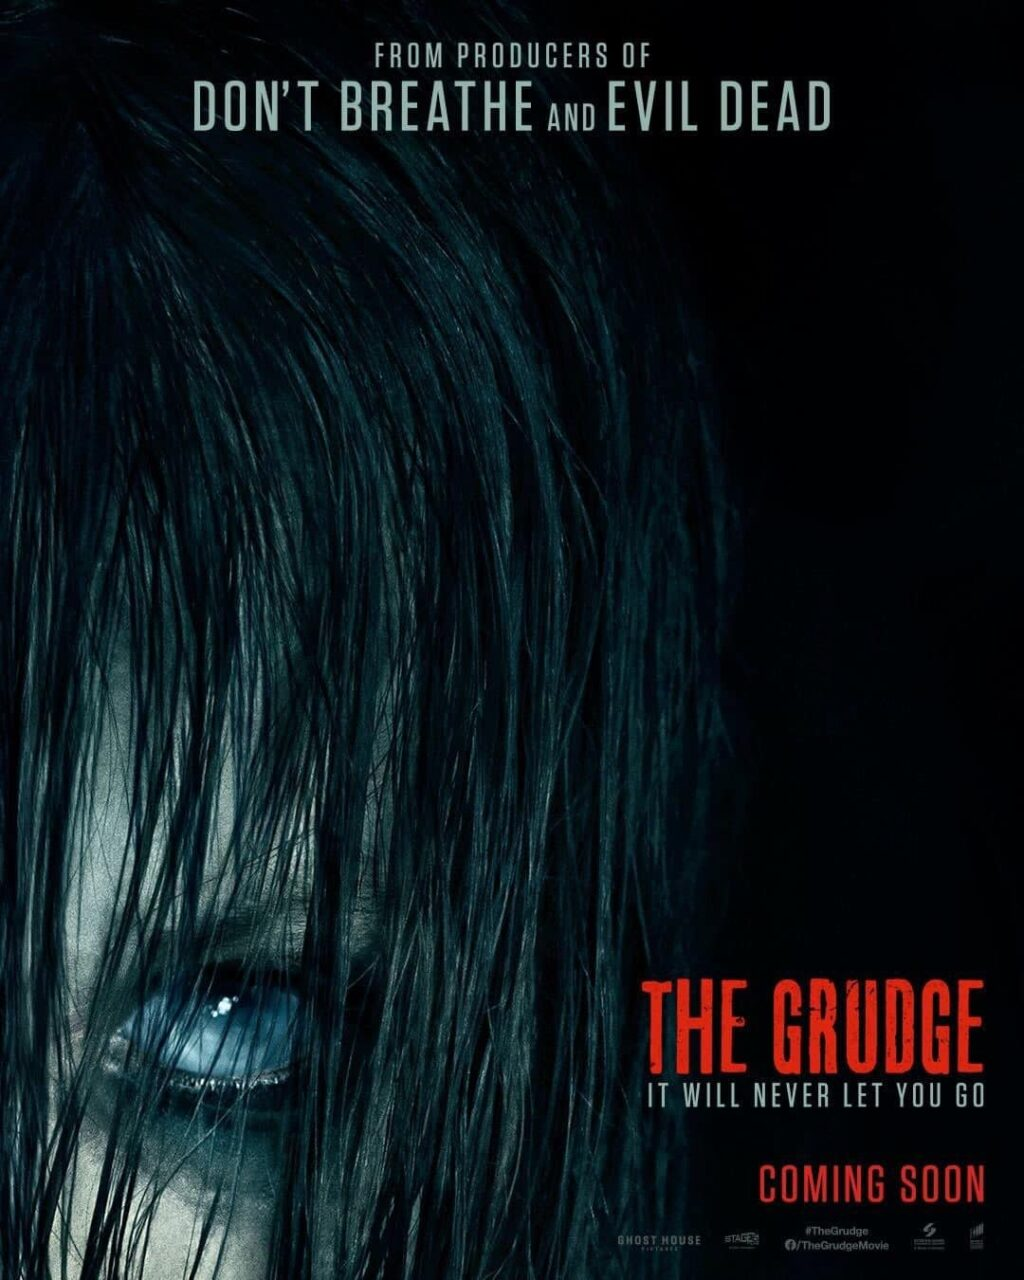 The Grudge Never Let You Go Poster 1024x1280 - THE GRUDGE Set Visit: Bringing Past Grudges to the Present